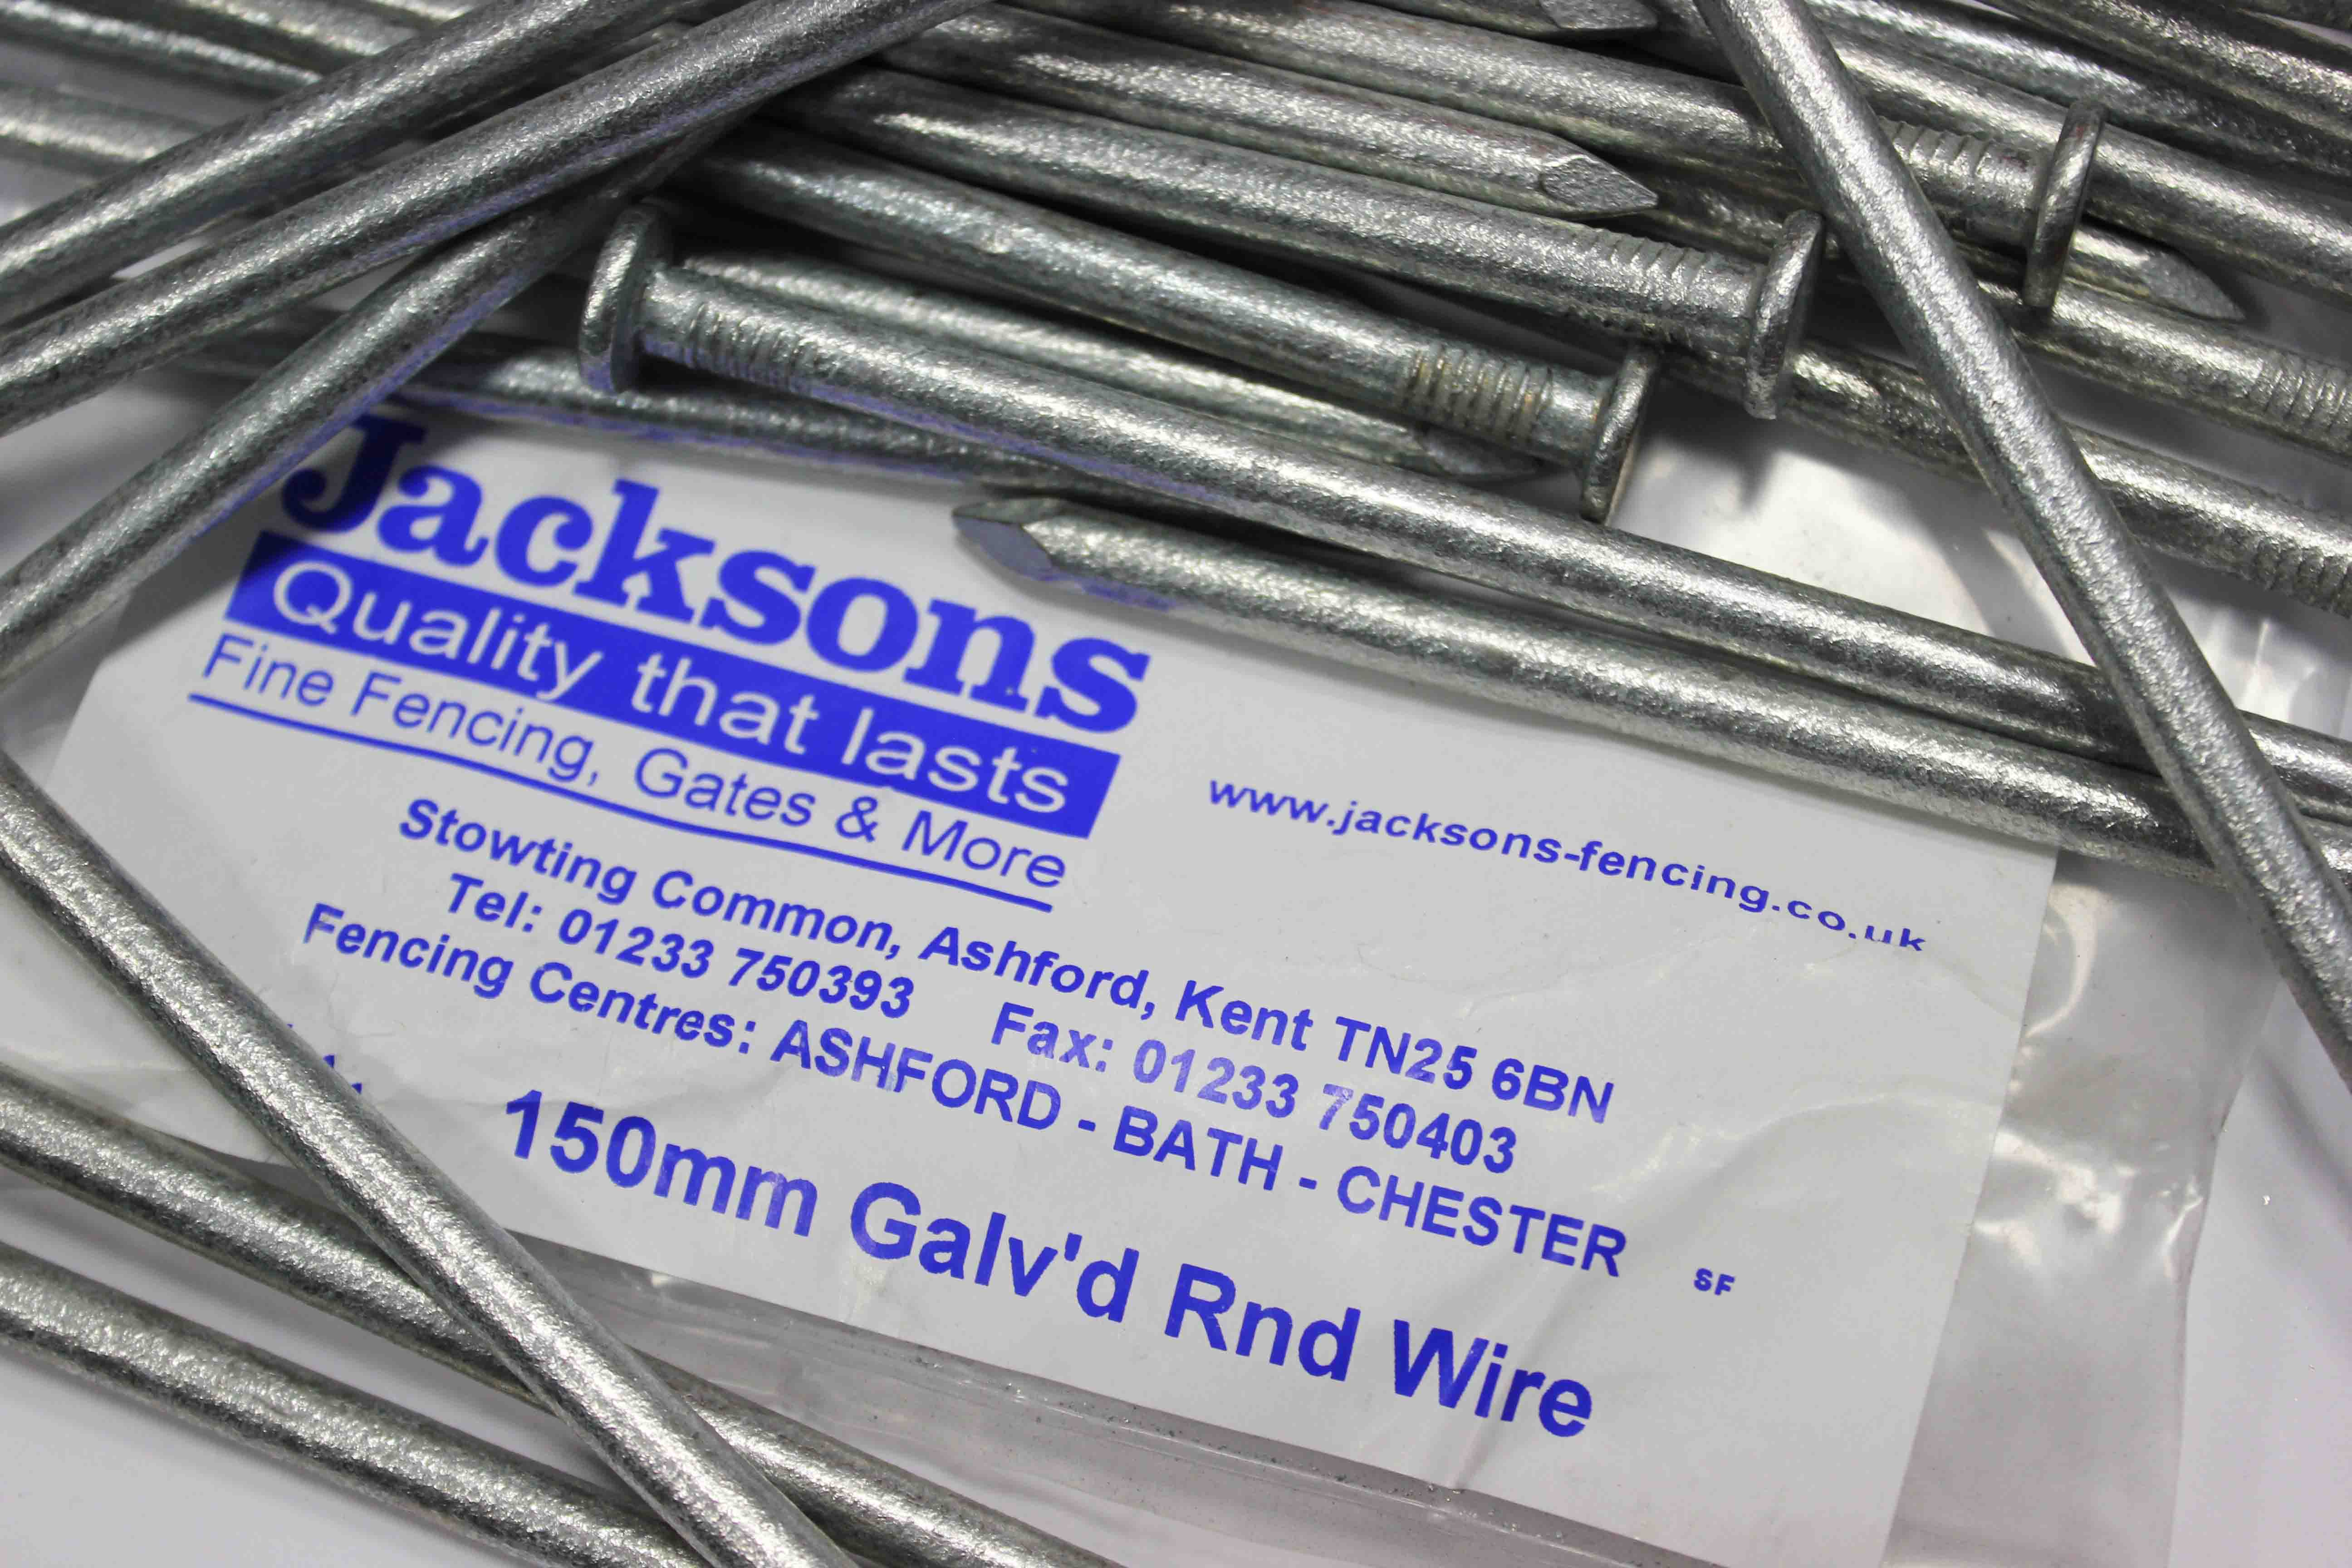 6 inch 150mm galvanised nails